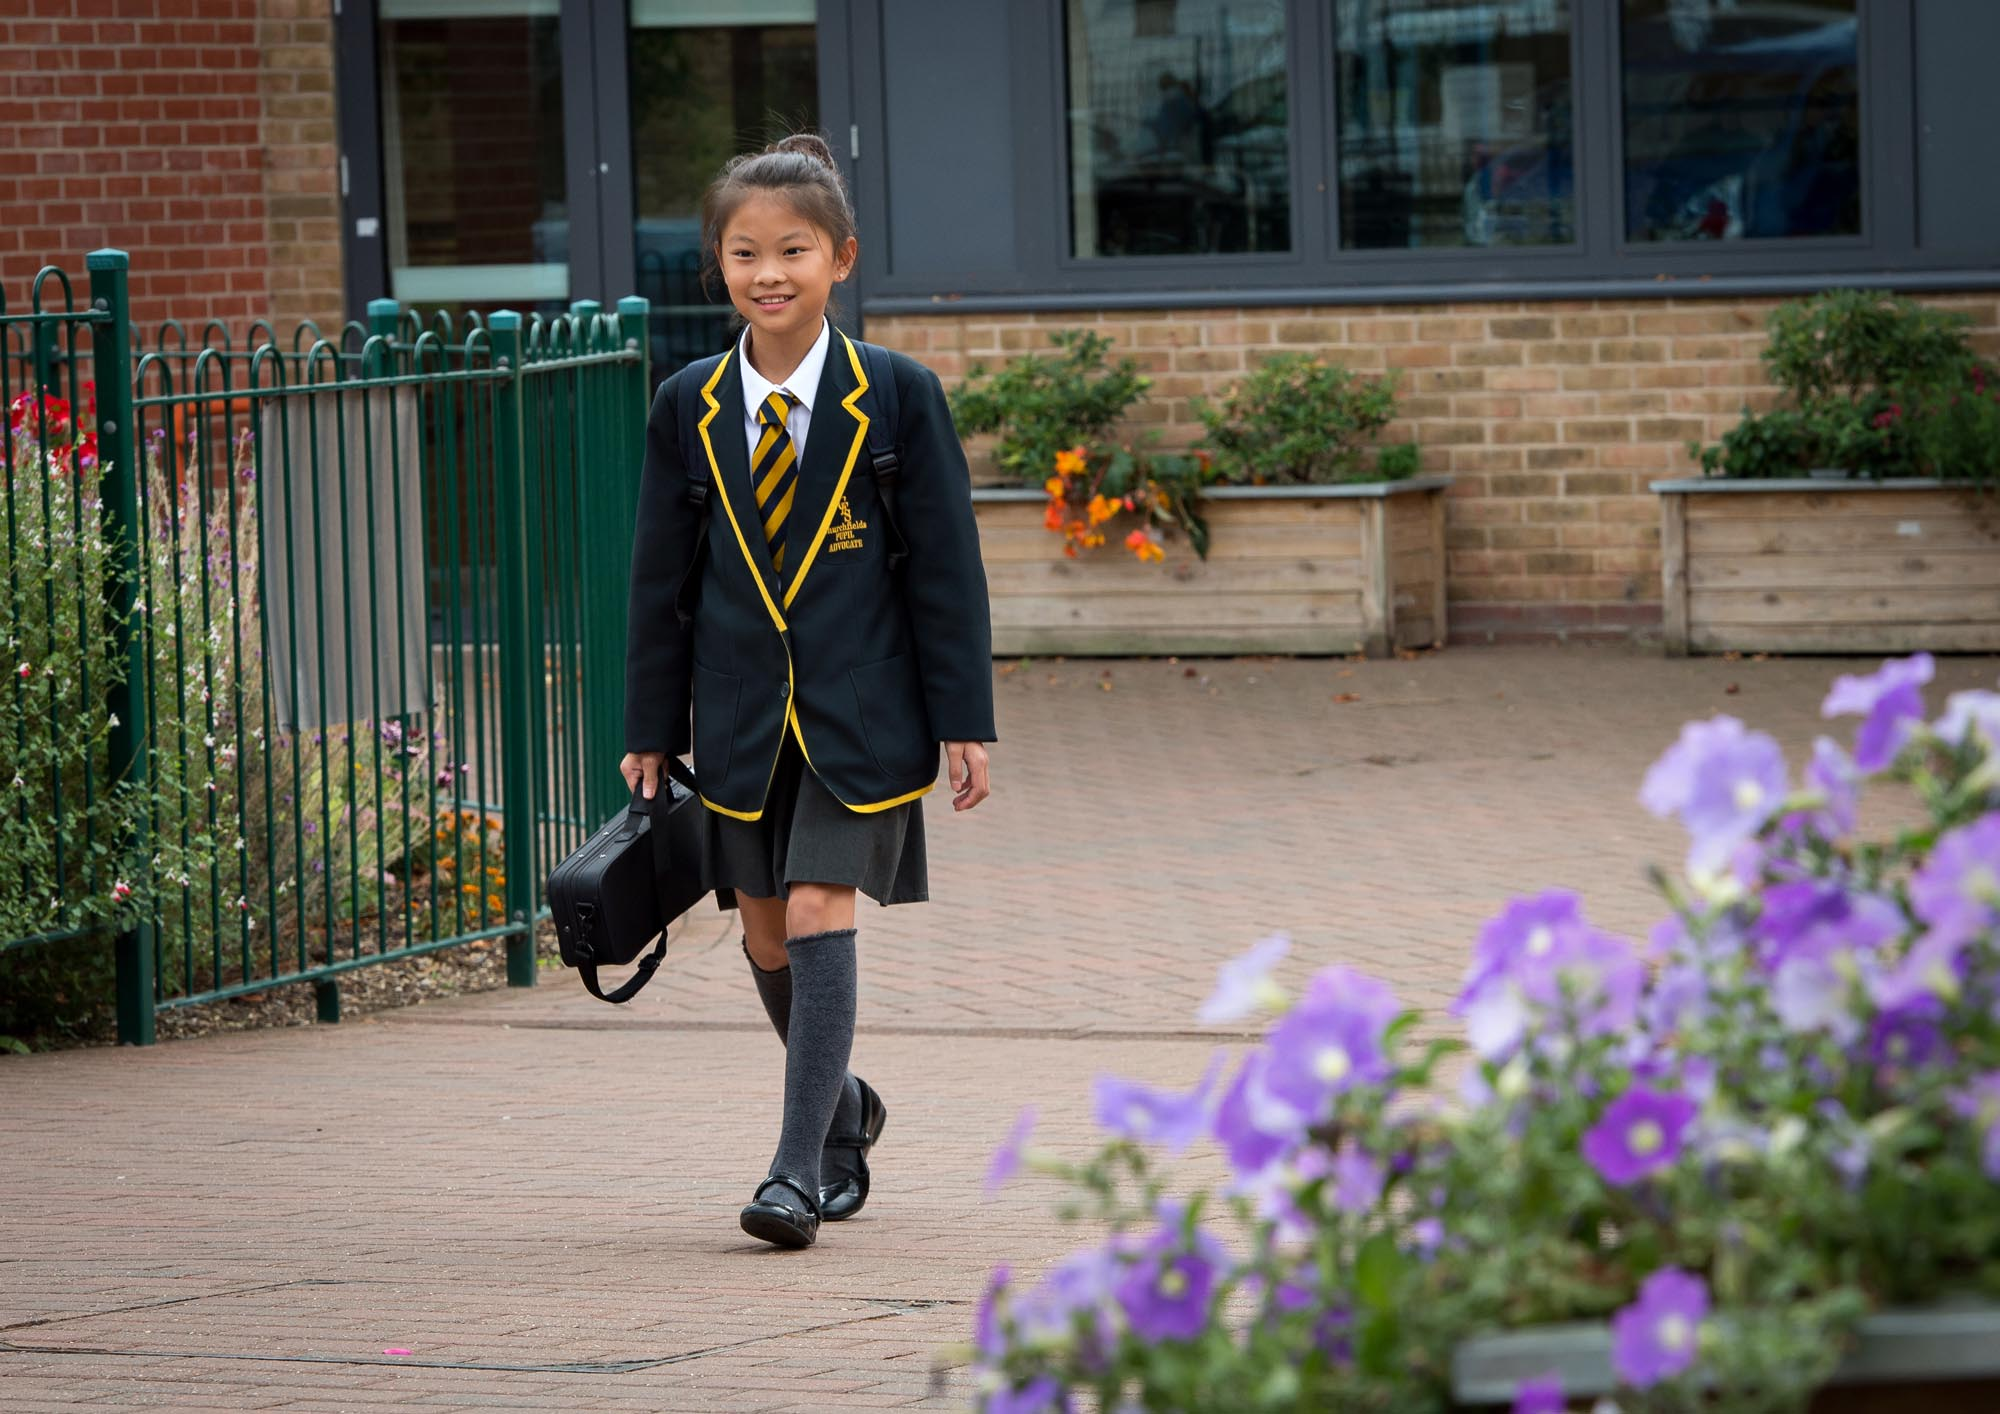 Child arriving at School